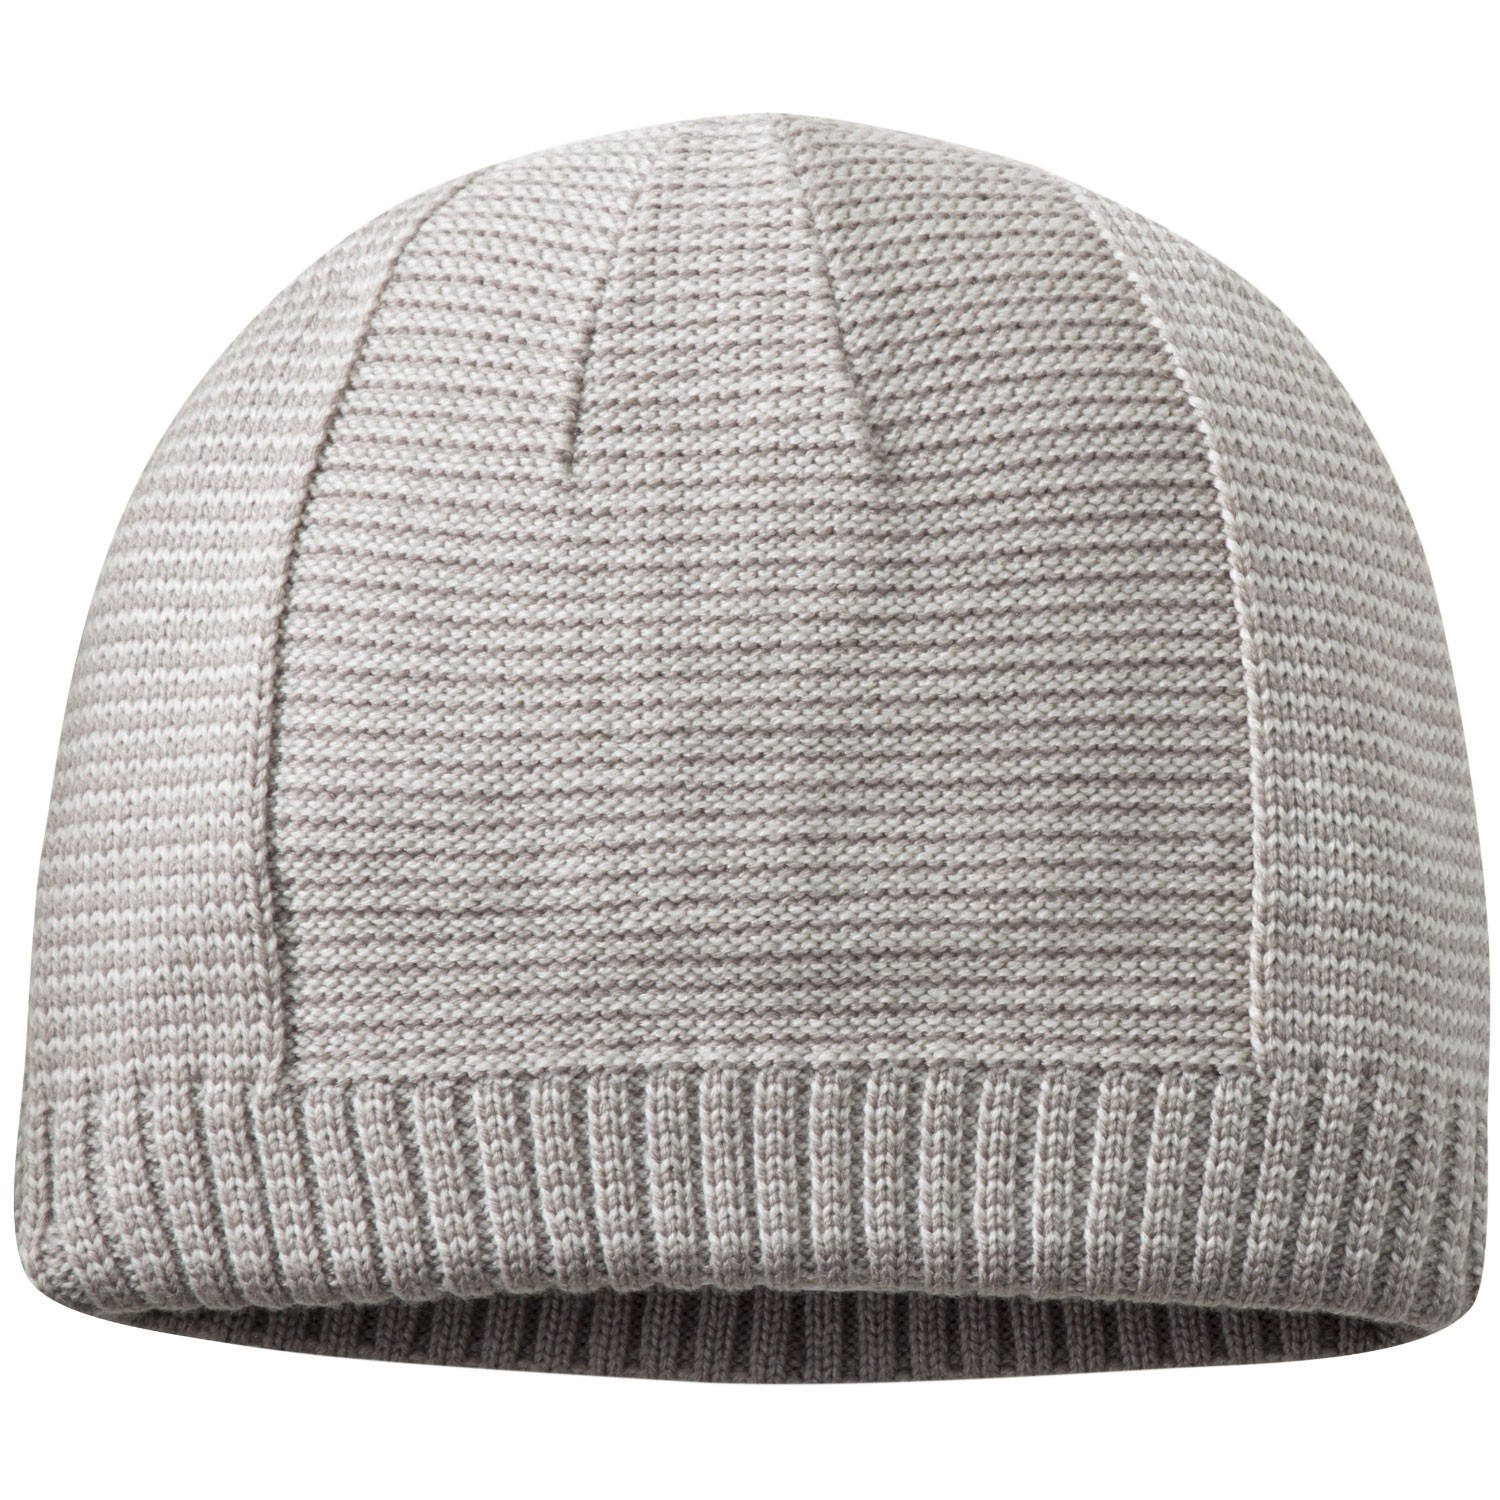 Outdoor Research Paige Beanie - Sand/Slate